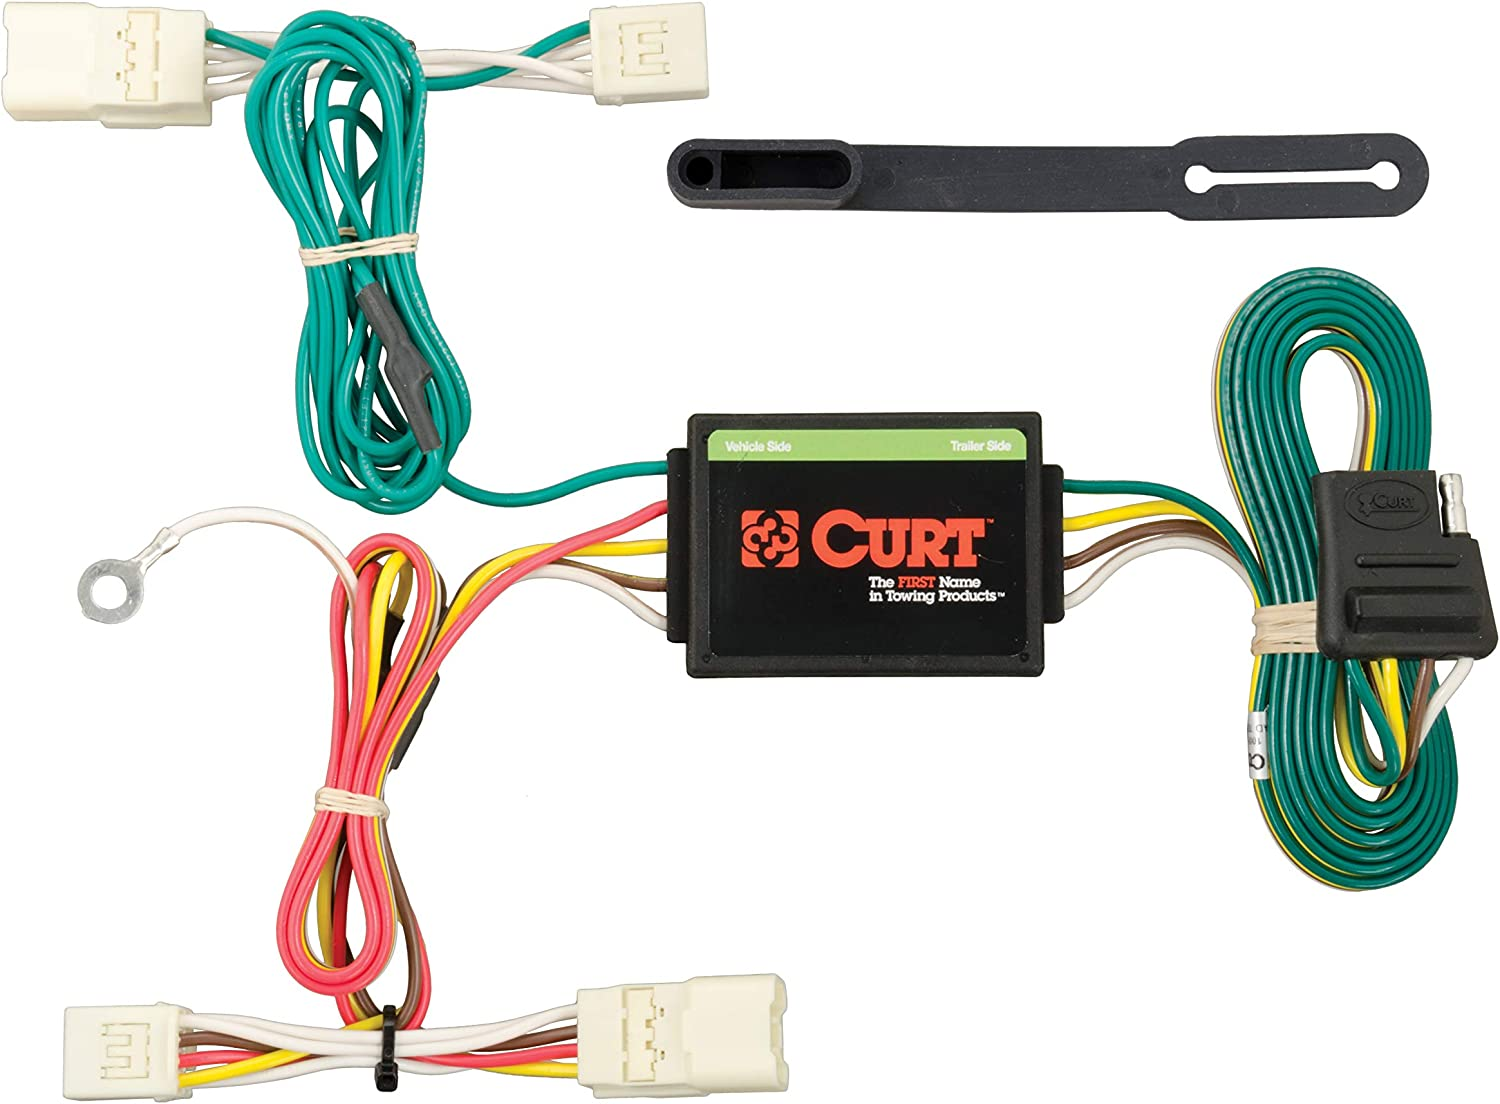 Mitsubishi Wiring Harness Trailer | Wiring Diagram on toyota trailer wiring harness, nissan trailer wiring harness, honda trailer wiring harness, gmc trailer wiring harness, land rover trailer wiring harness, volvo trailer wiring harness, audi trailer wiring harness,